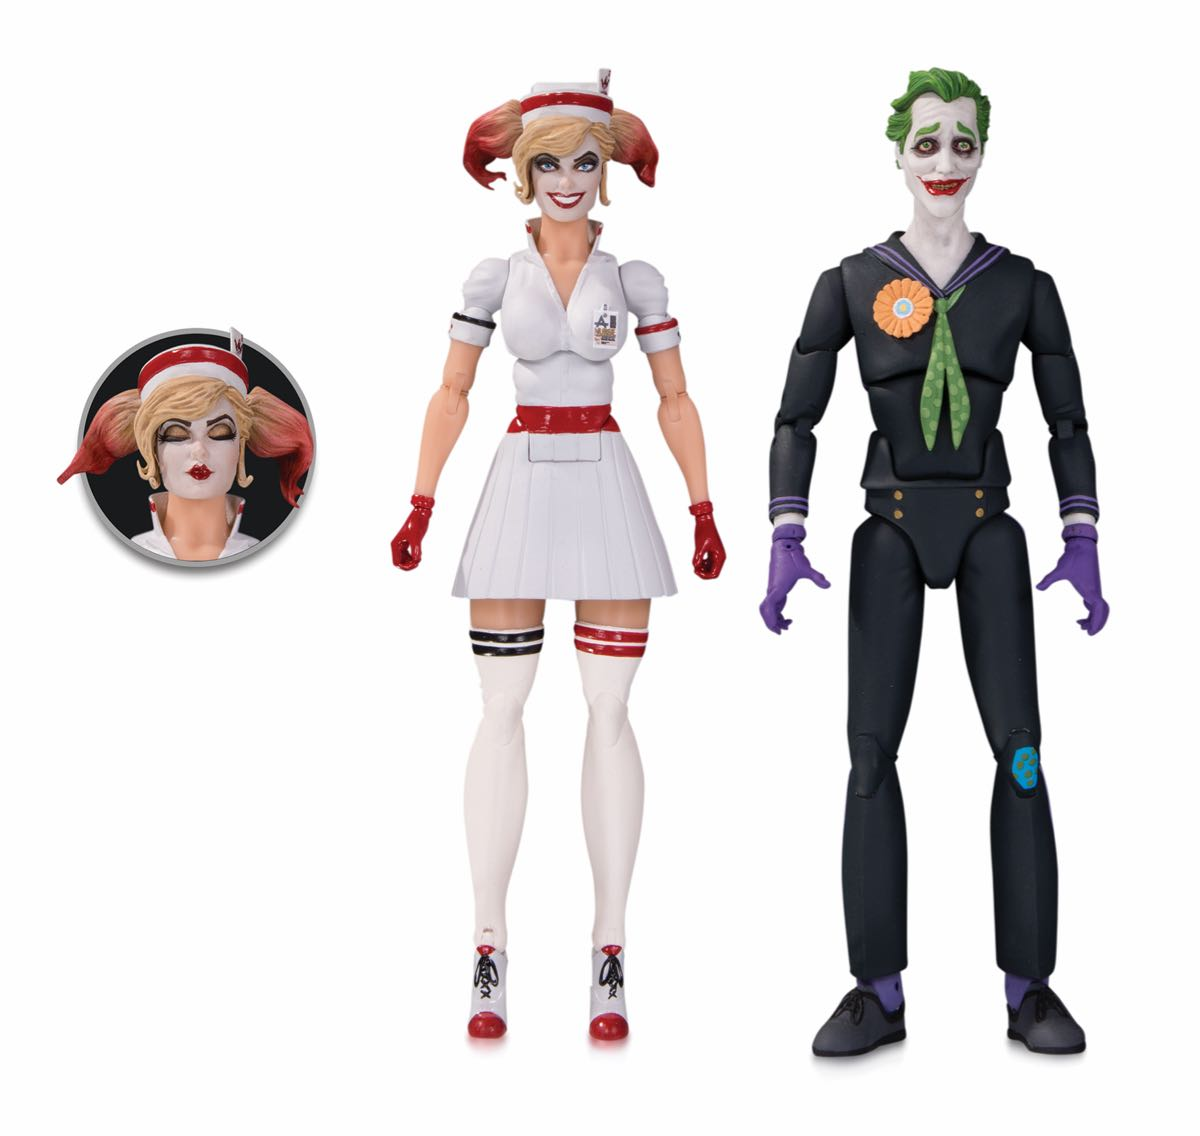 DC DESIGNER SERIES: ANT LUCIA BOMBSHELLS NURSE HARLEY AND THE JOKER ACTION FIGURE TWO-PACK